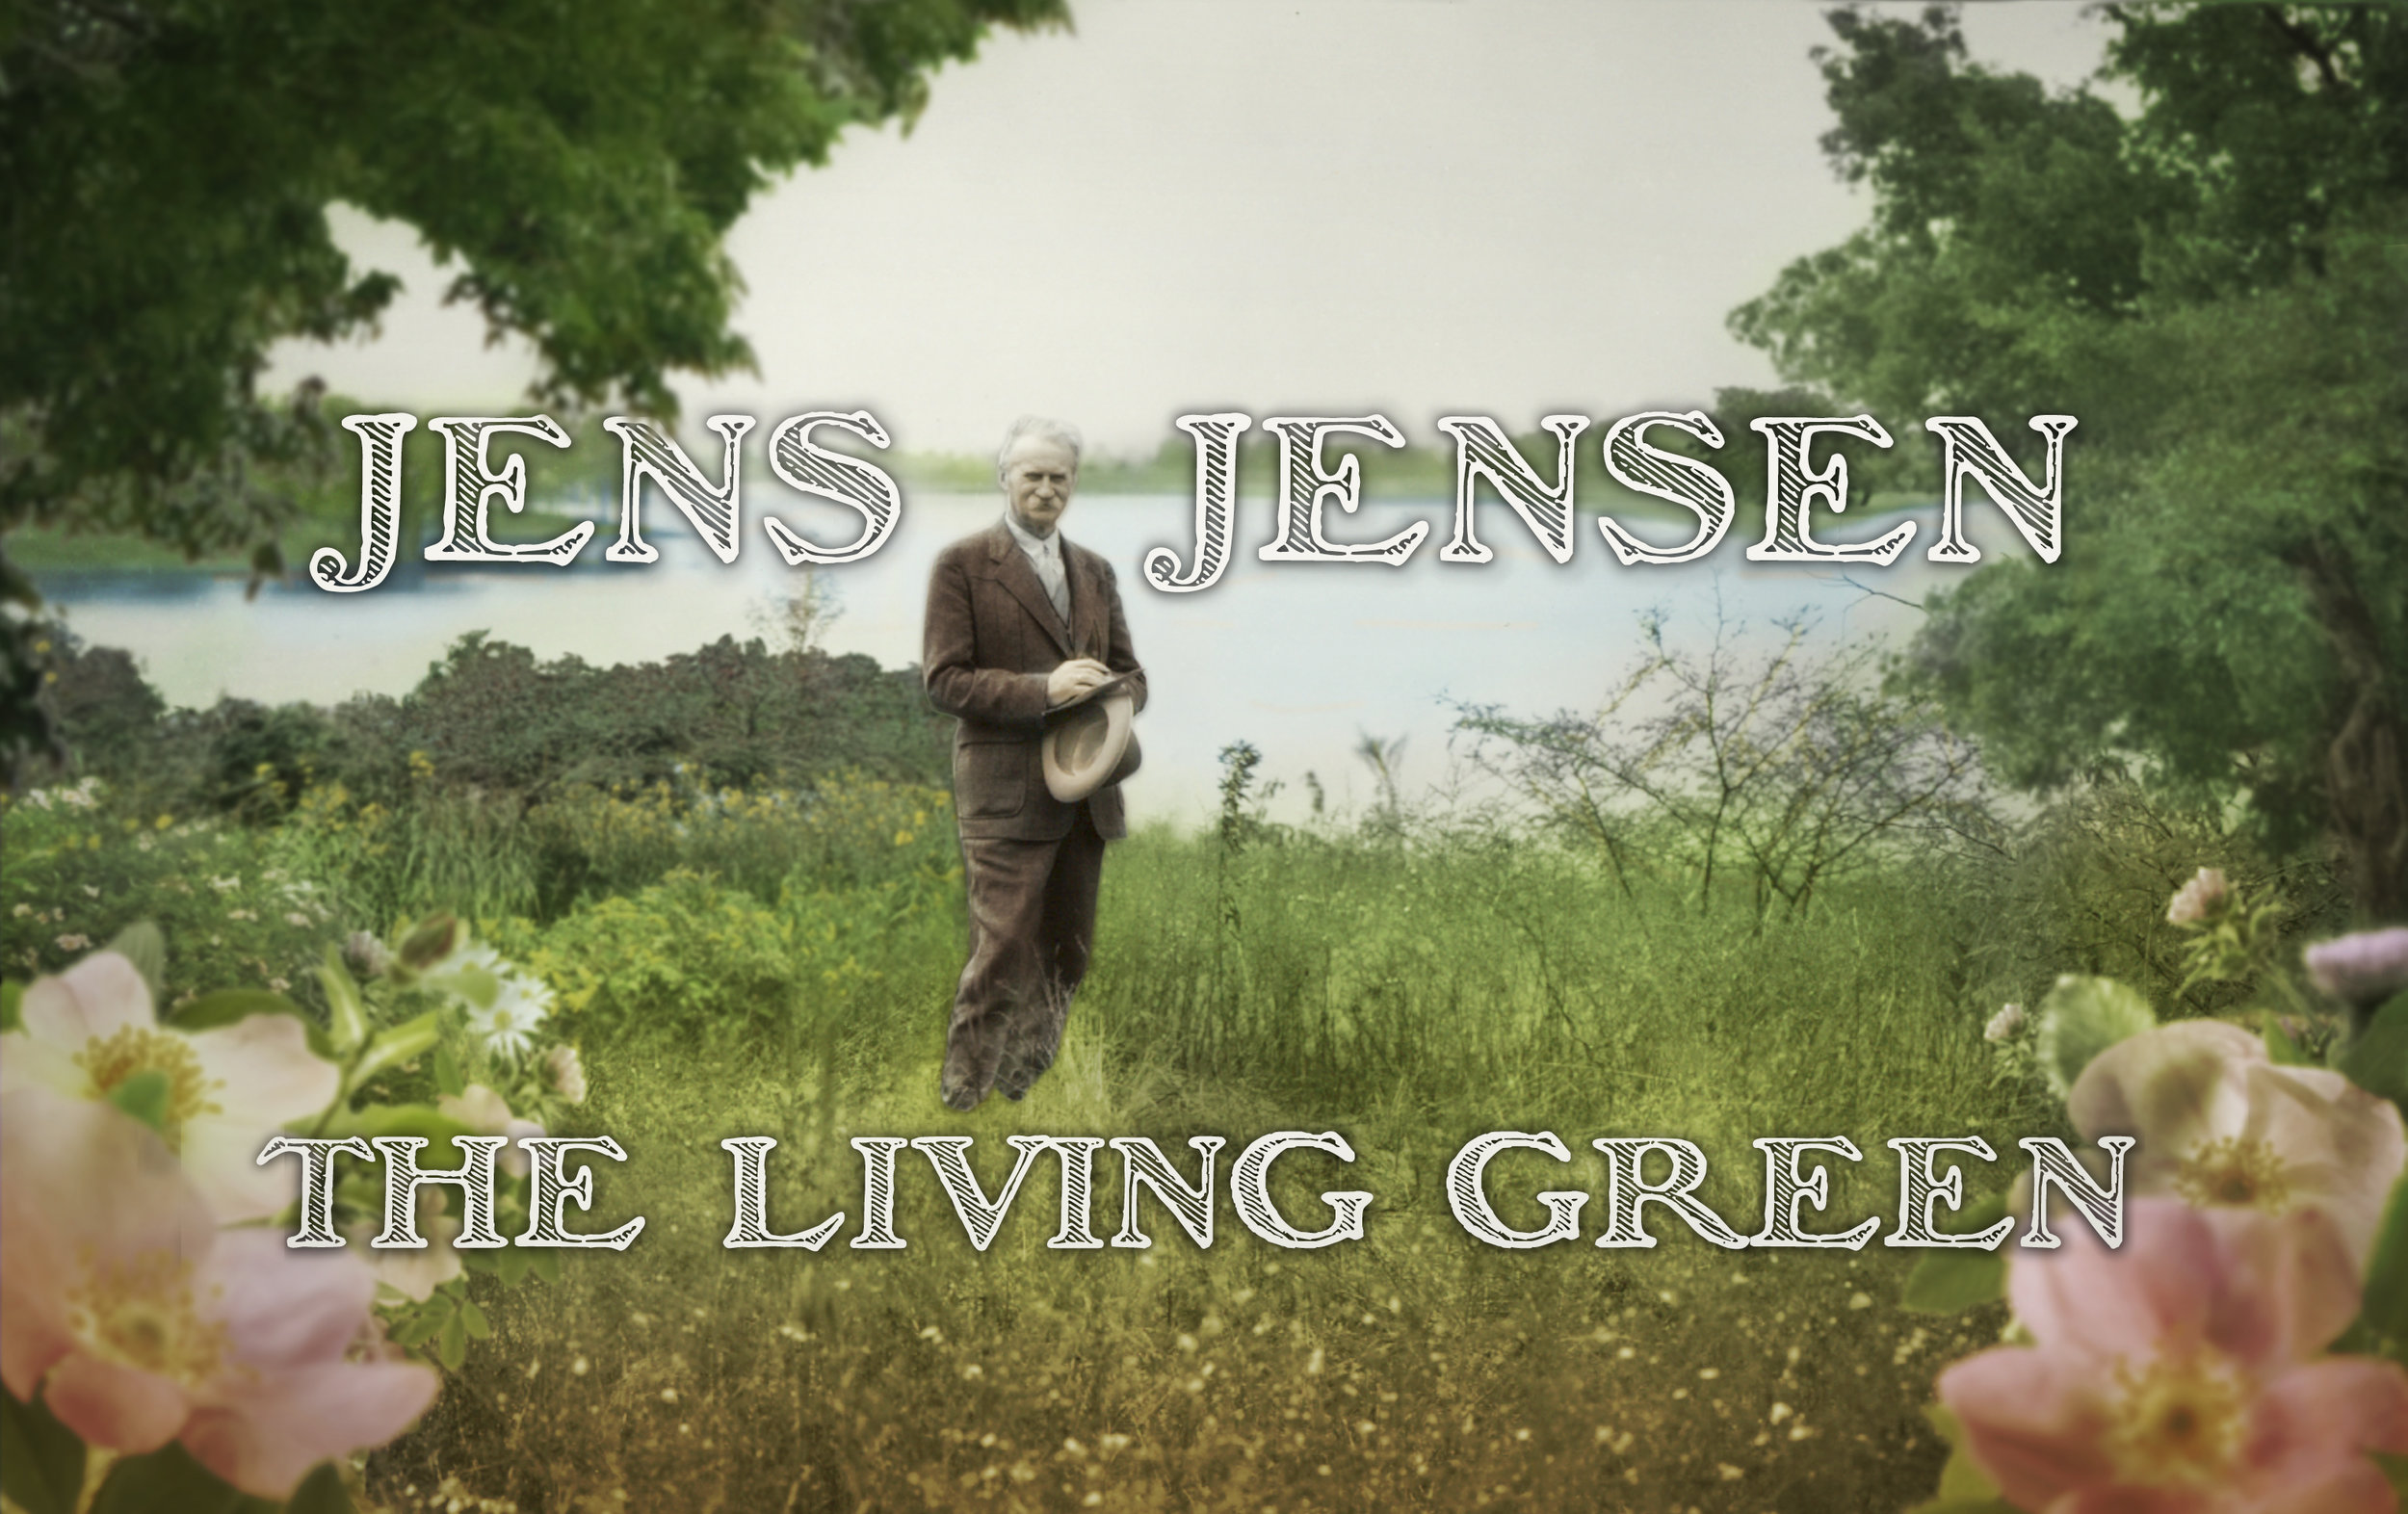 Jensen-Title-Sequence-HIGHRES copy copy.jpg